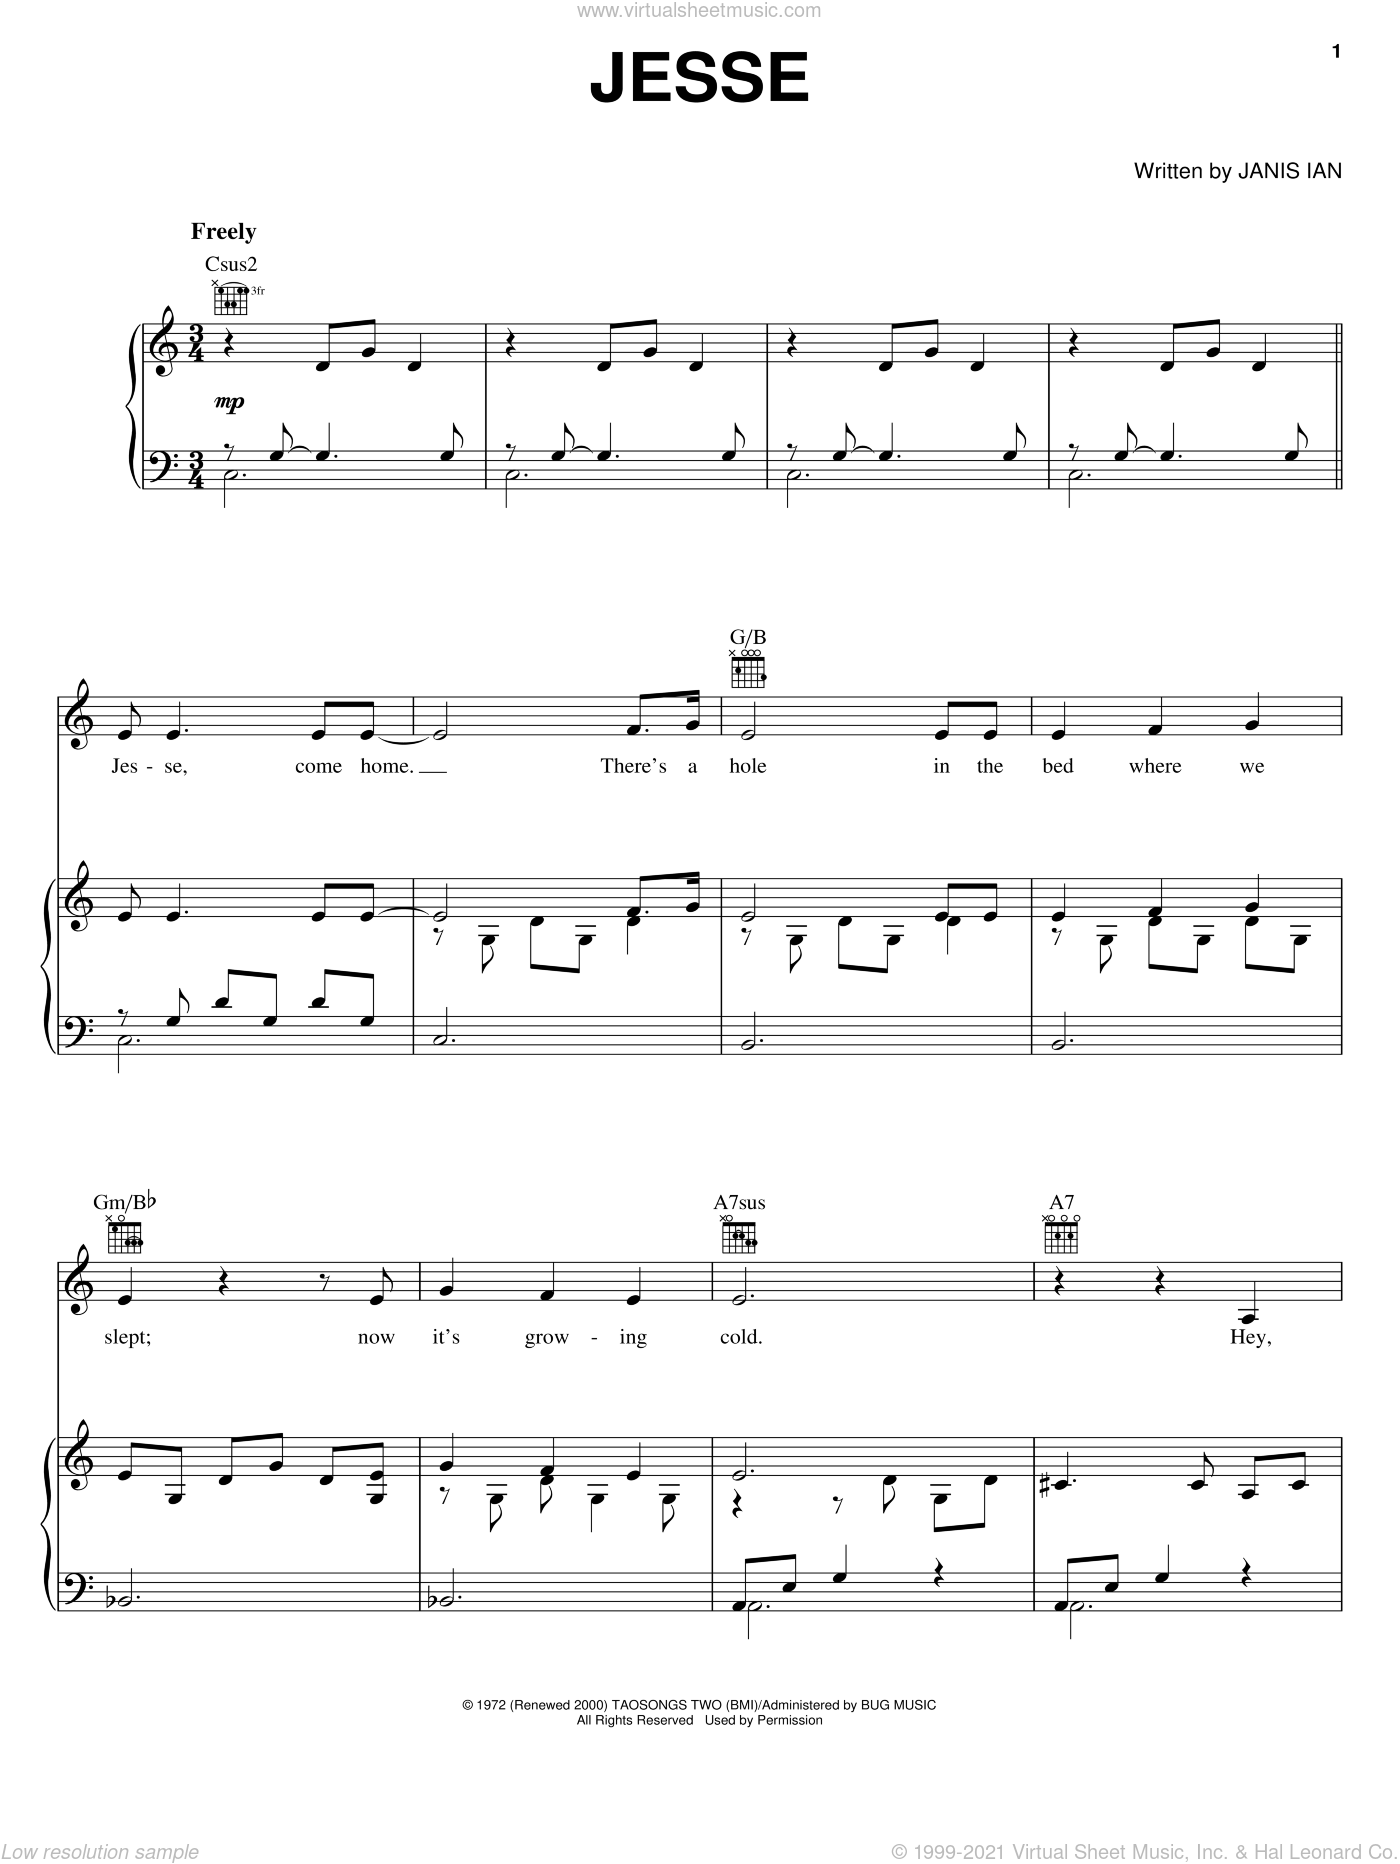 Jesse sheet music for voice, piano or guitar by Janis Ian